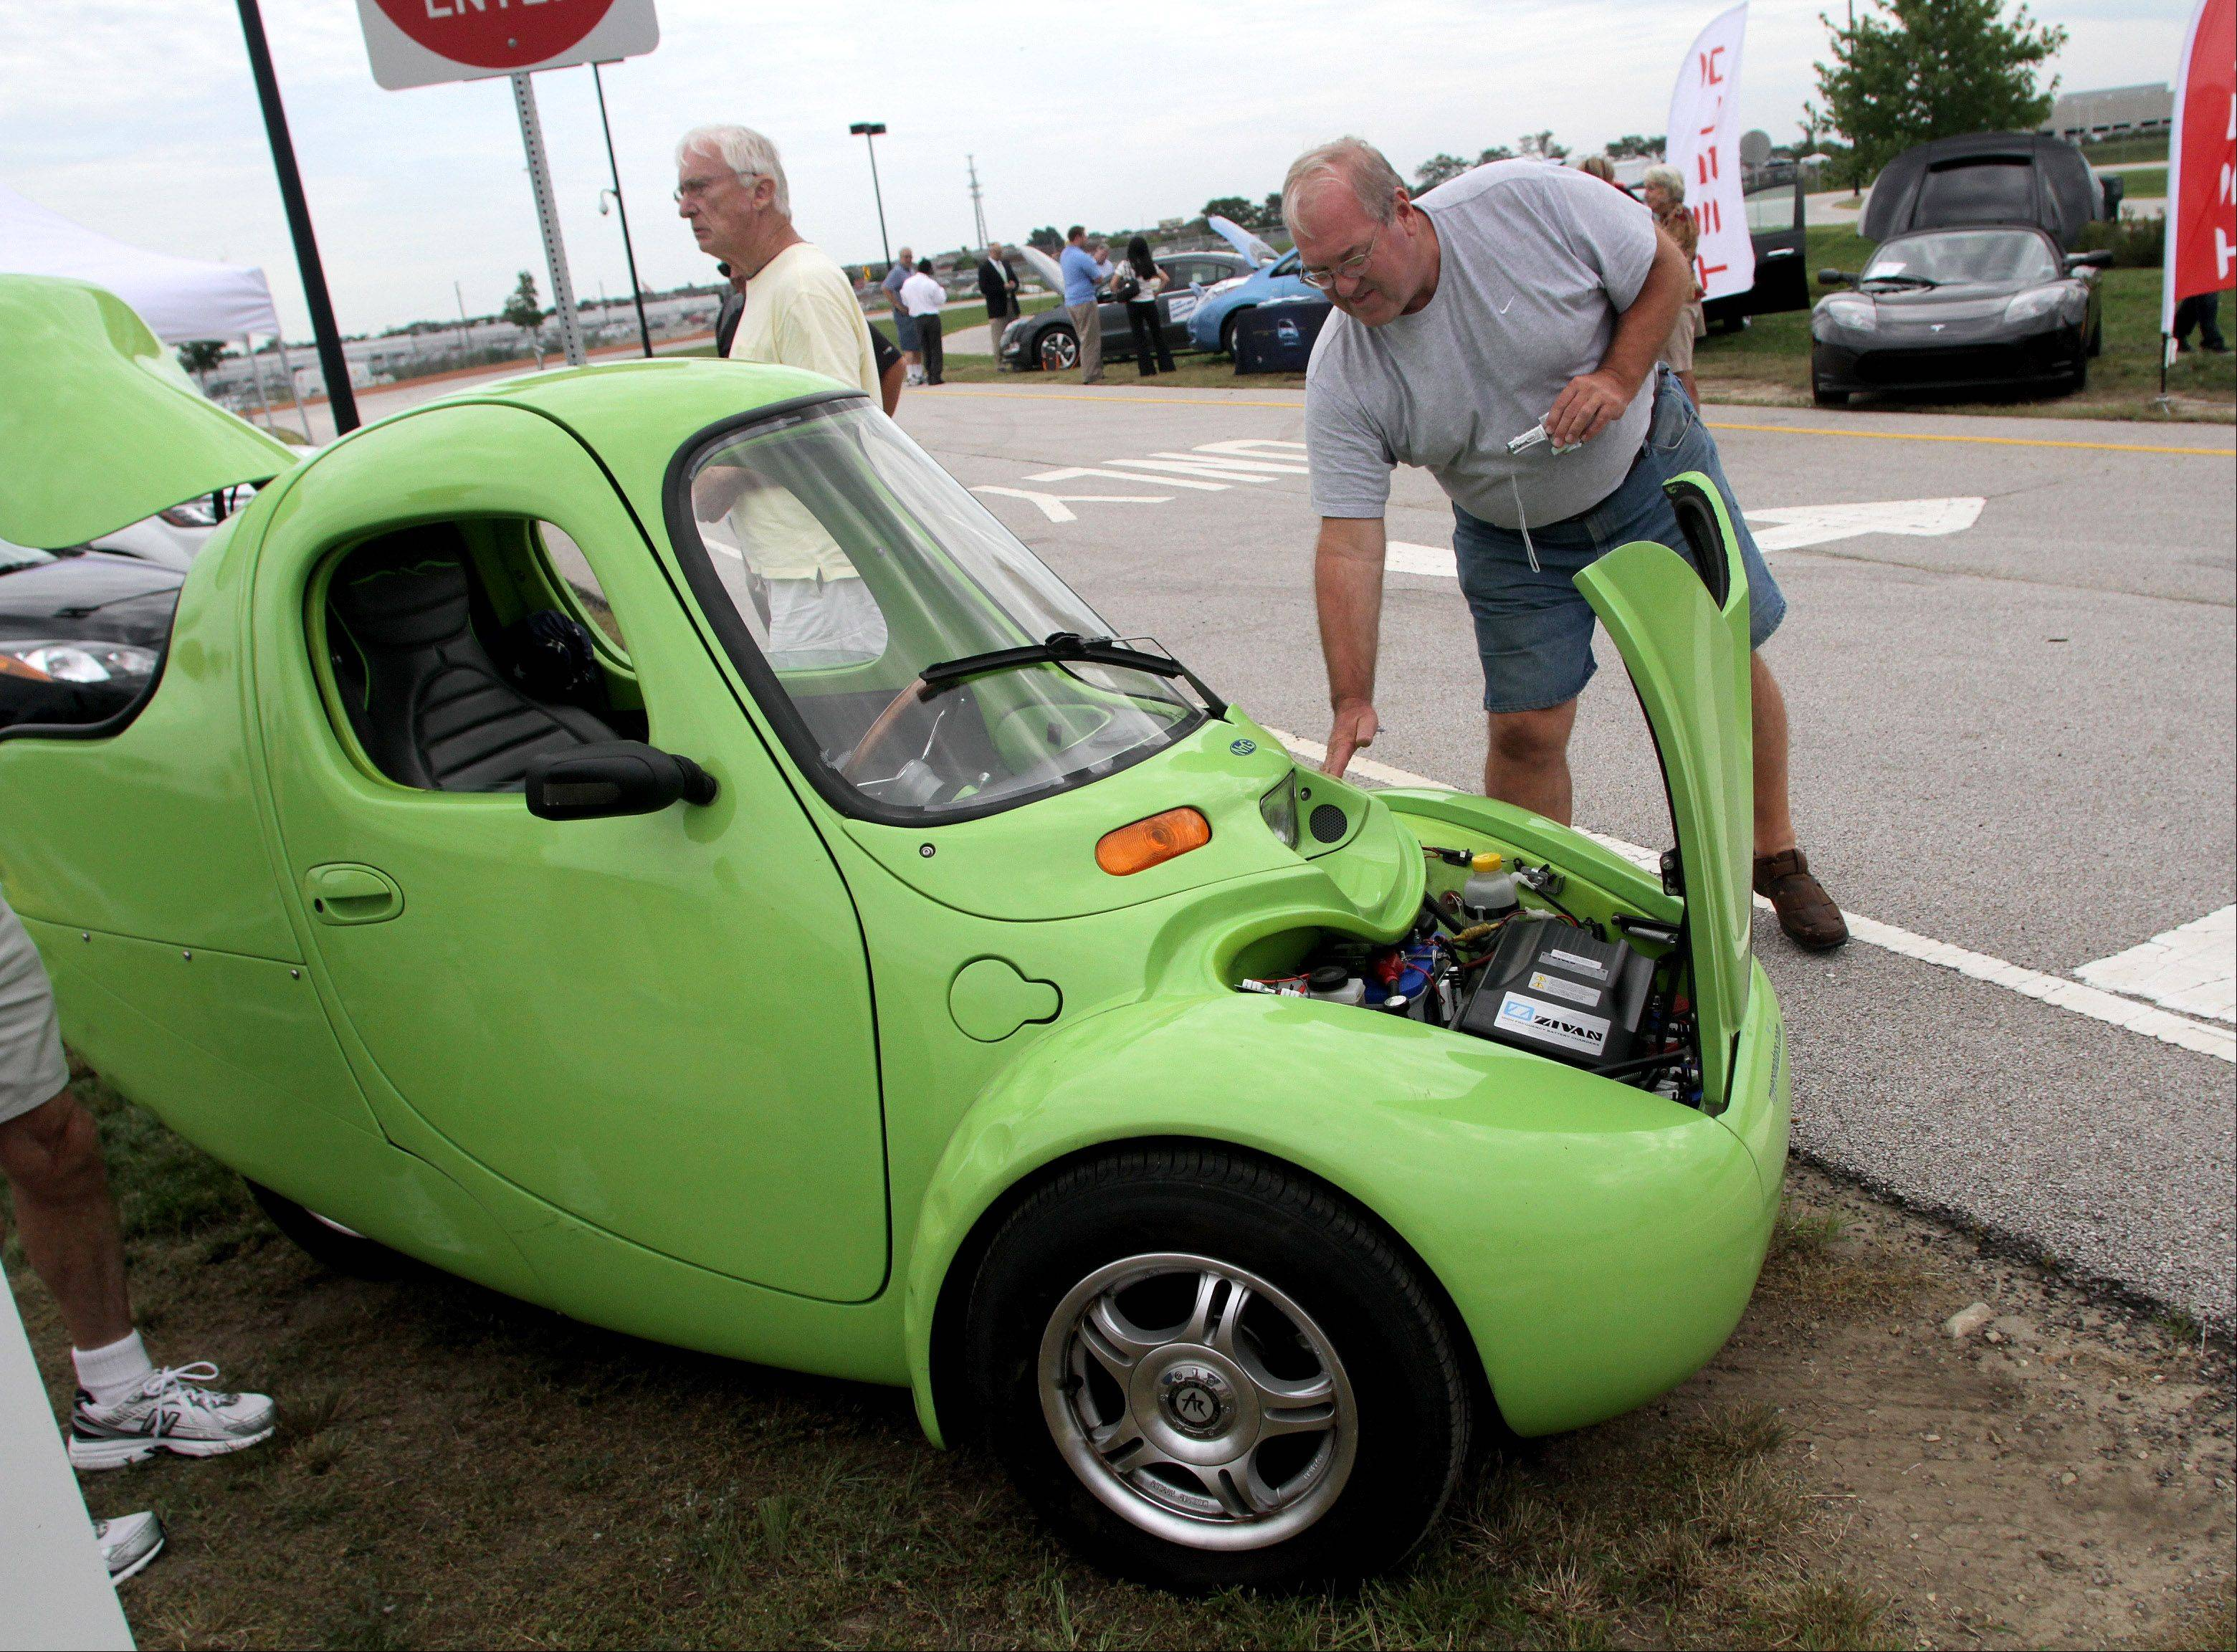 Dan Ferraro of Carol Stream checks out an all-electric car called N.m.G. (no more gas) made by Myers Motors. It was on display at the Green Car Show at the Naperville Test Track Tuesday in Naperville.